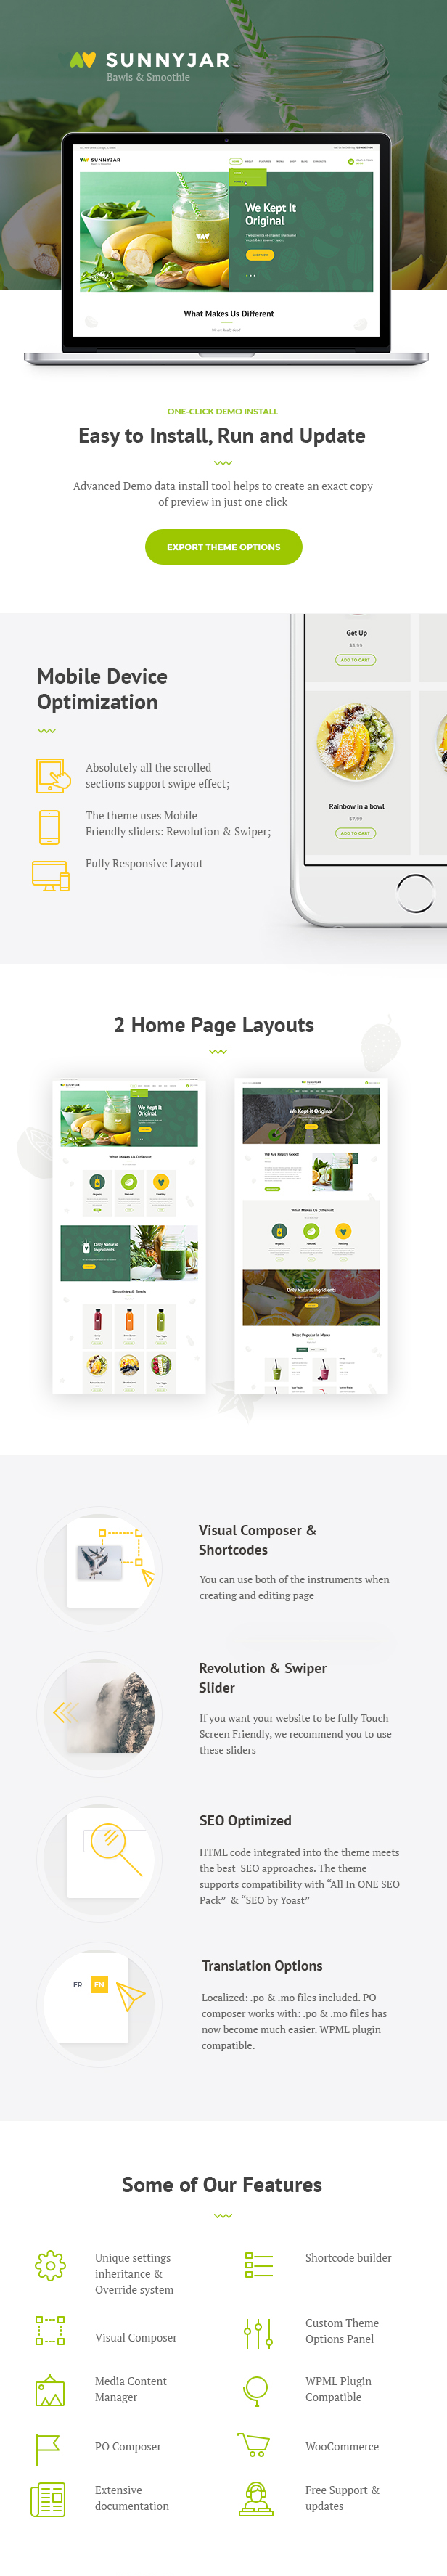 Smoothie Bar & Healthy Drinks Shop WordPress Theme features